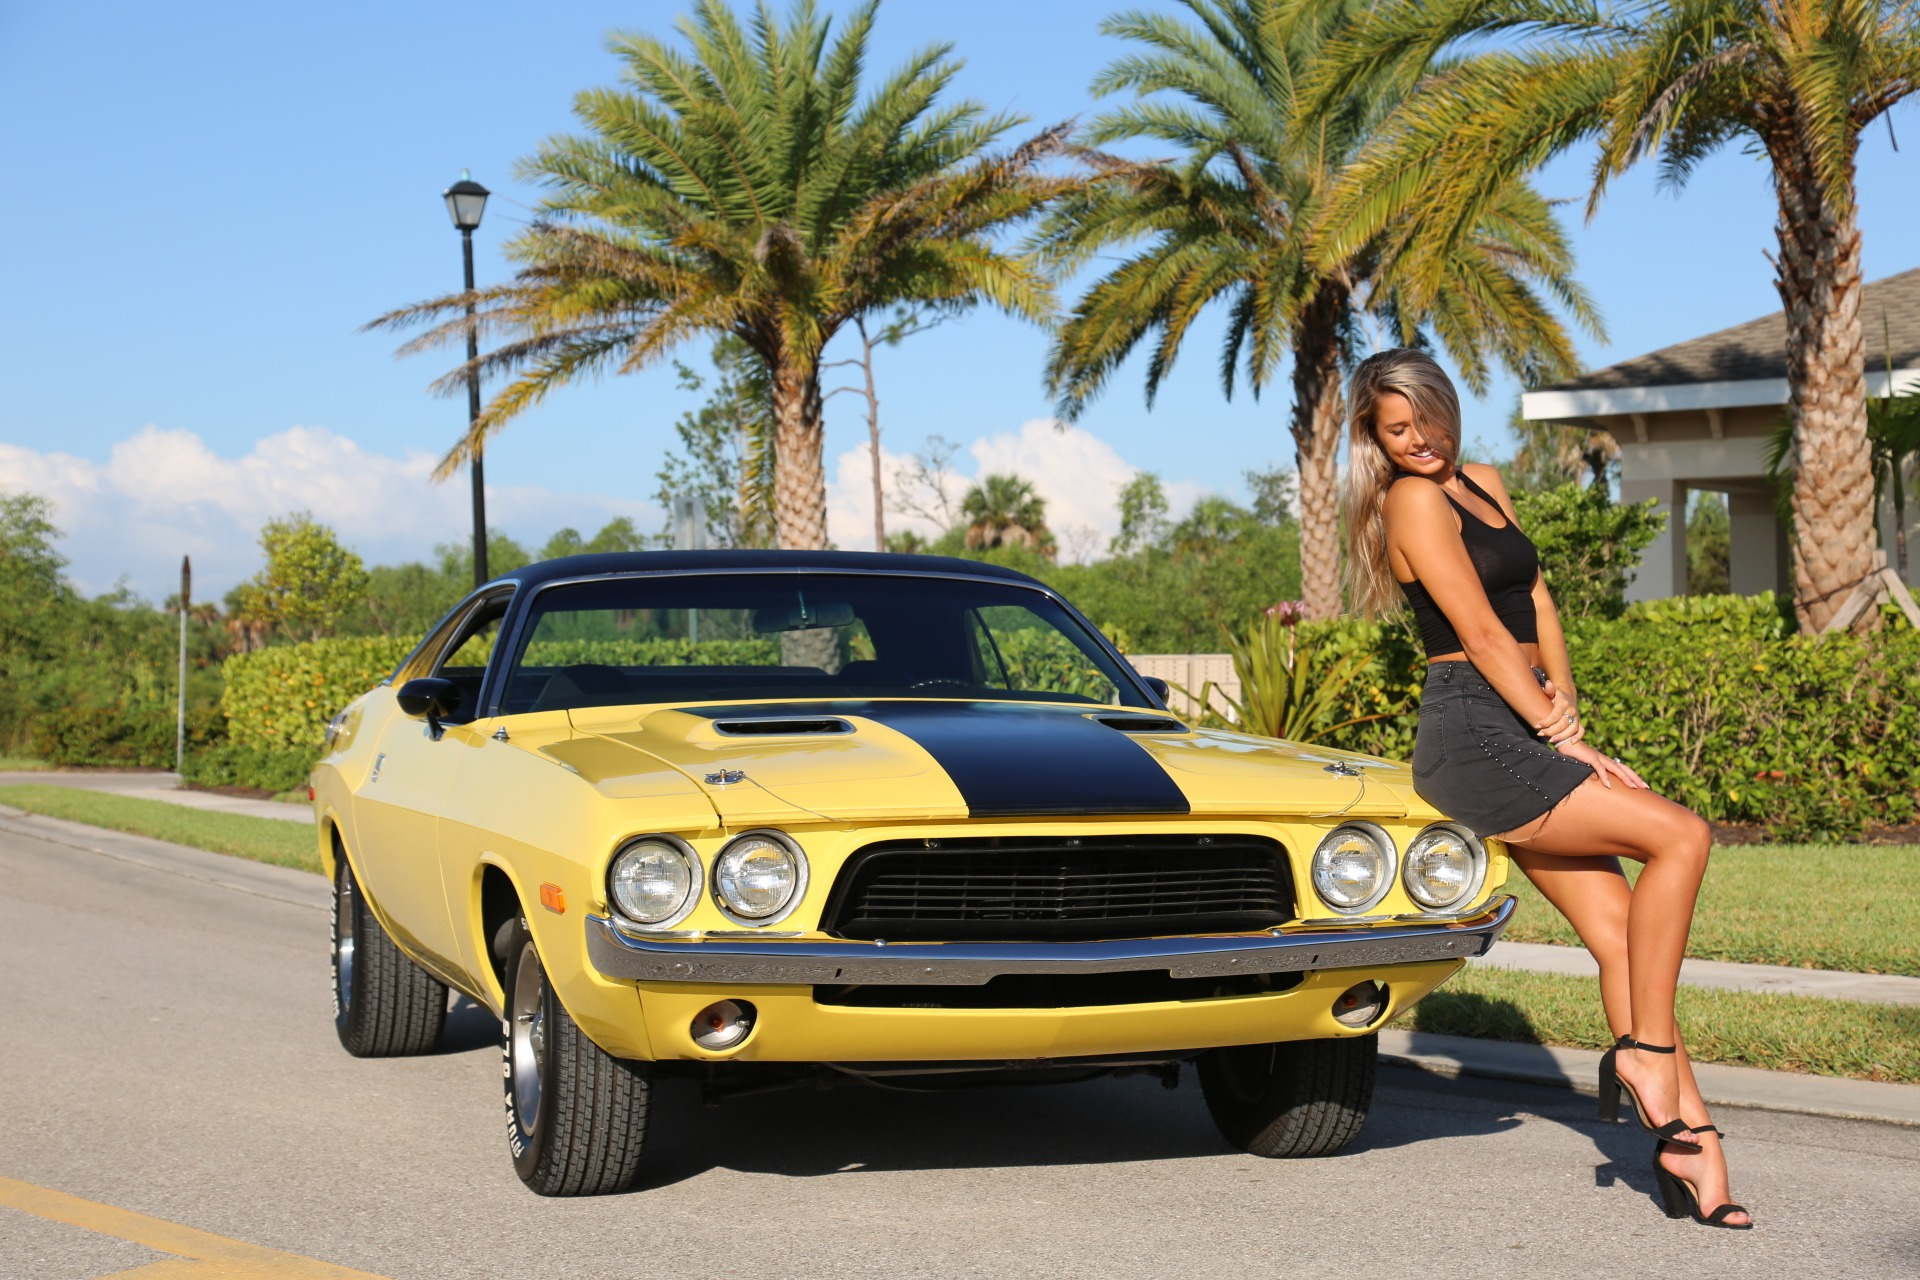 Used 1973 Dodge Challenger 440 V8 for sale $28,000 at Muscle Cars for Sale Inc. in Fort Myers FL 33912 3